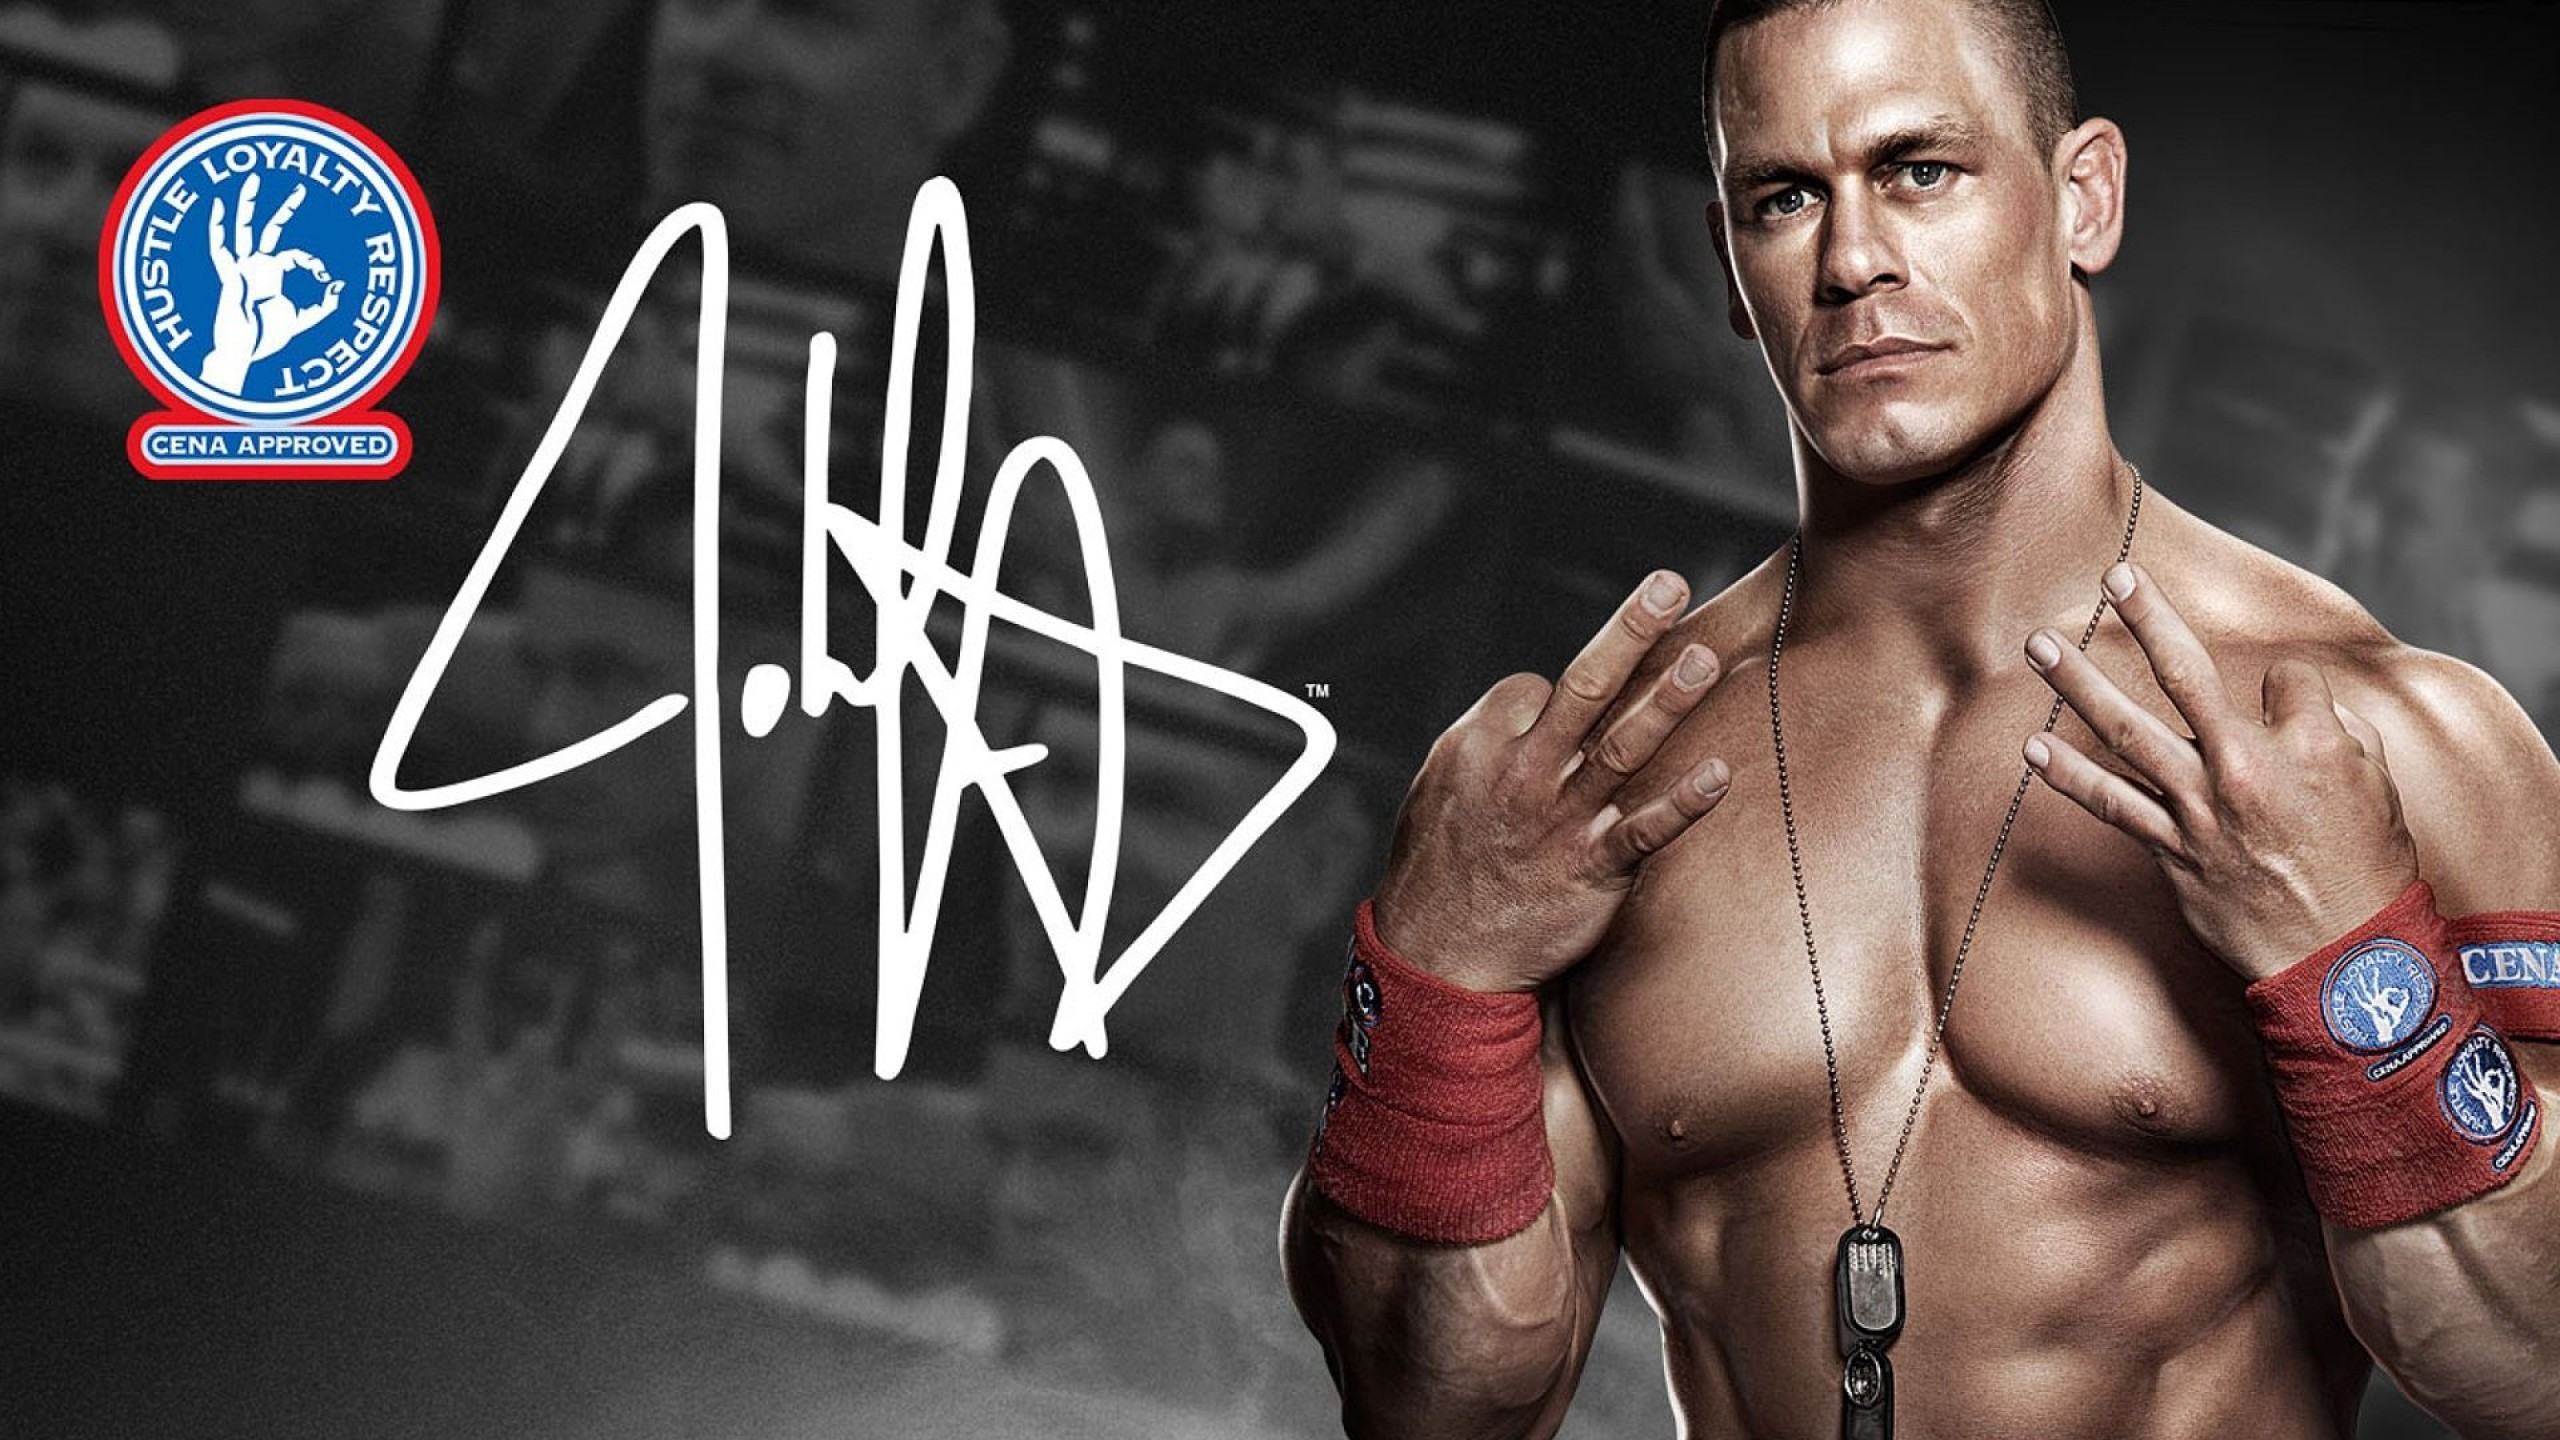 Res: 2560x1440, WWE HD Wallpaper   Background Image      ID:518178 - Wallpaper  Abyss